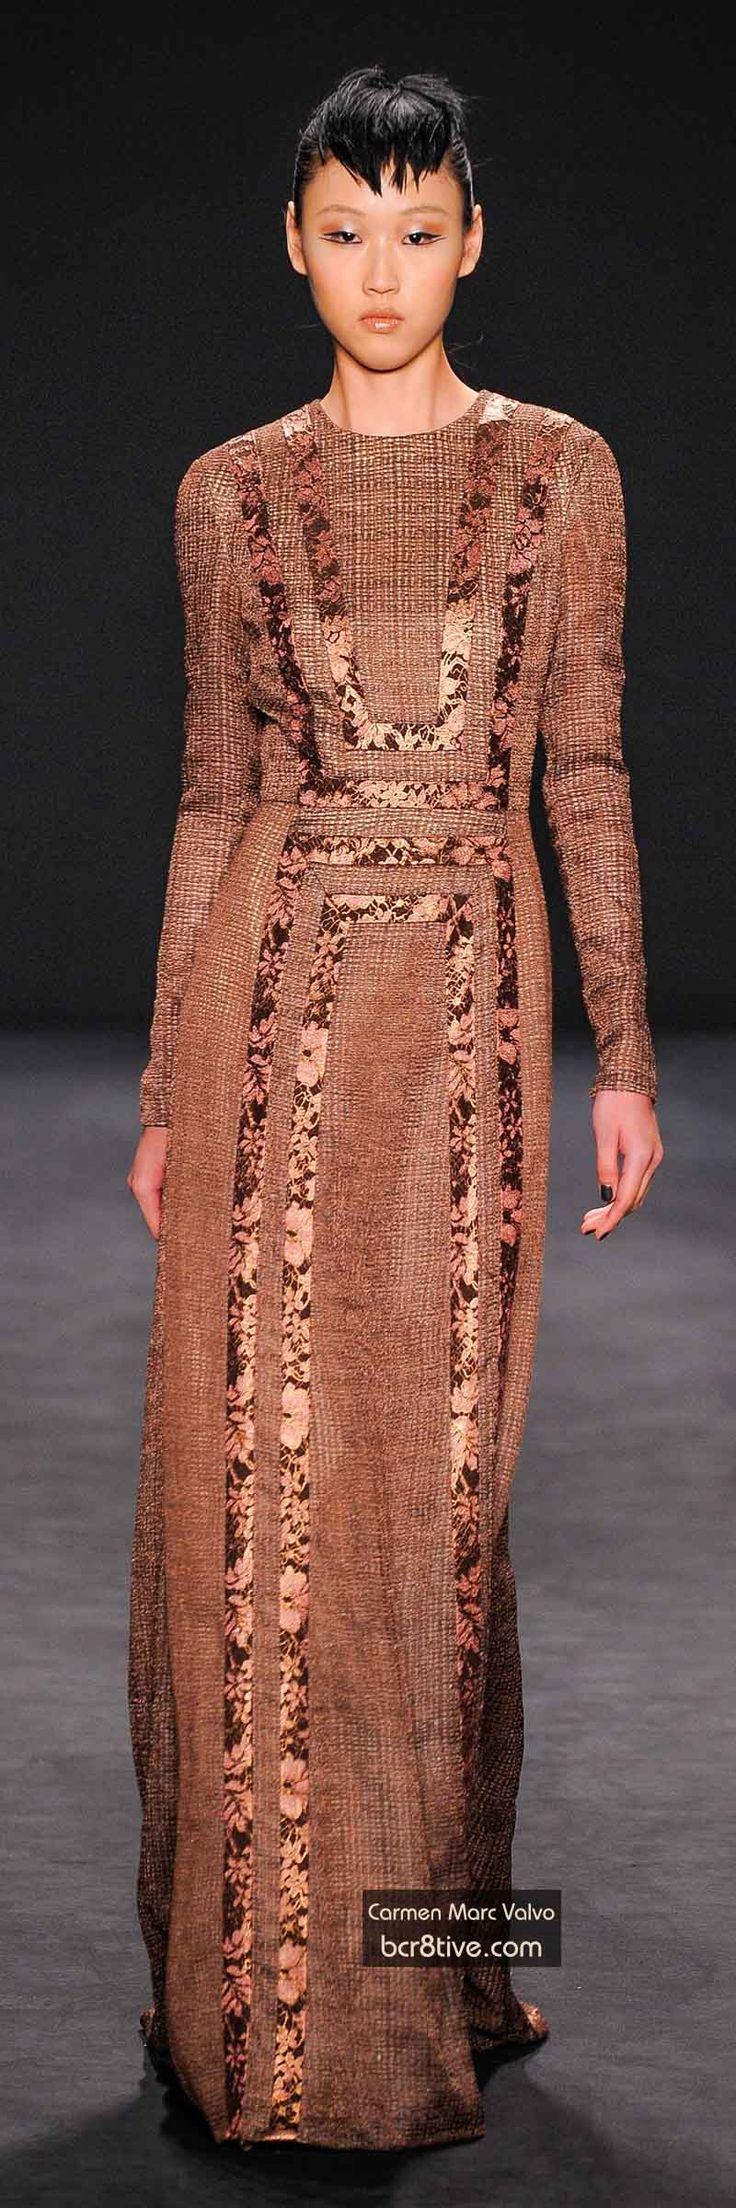 The Best Gowns of Fall 2014 Fashion Week International: Carmen Marc Valvo FW 2014 #NYFW